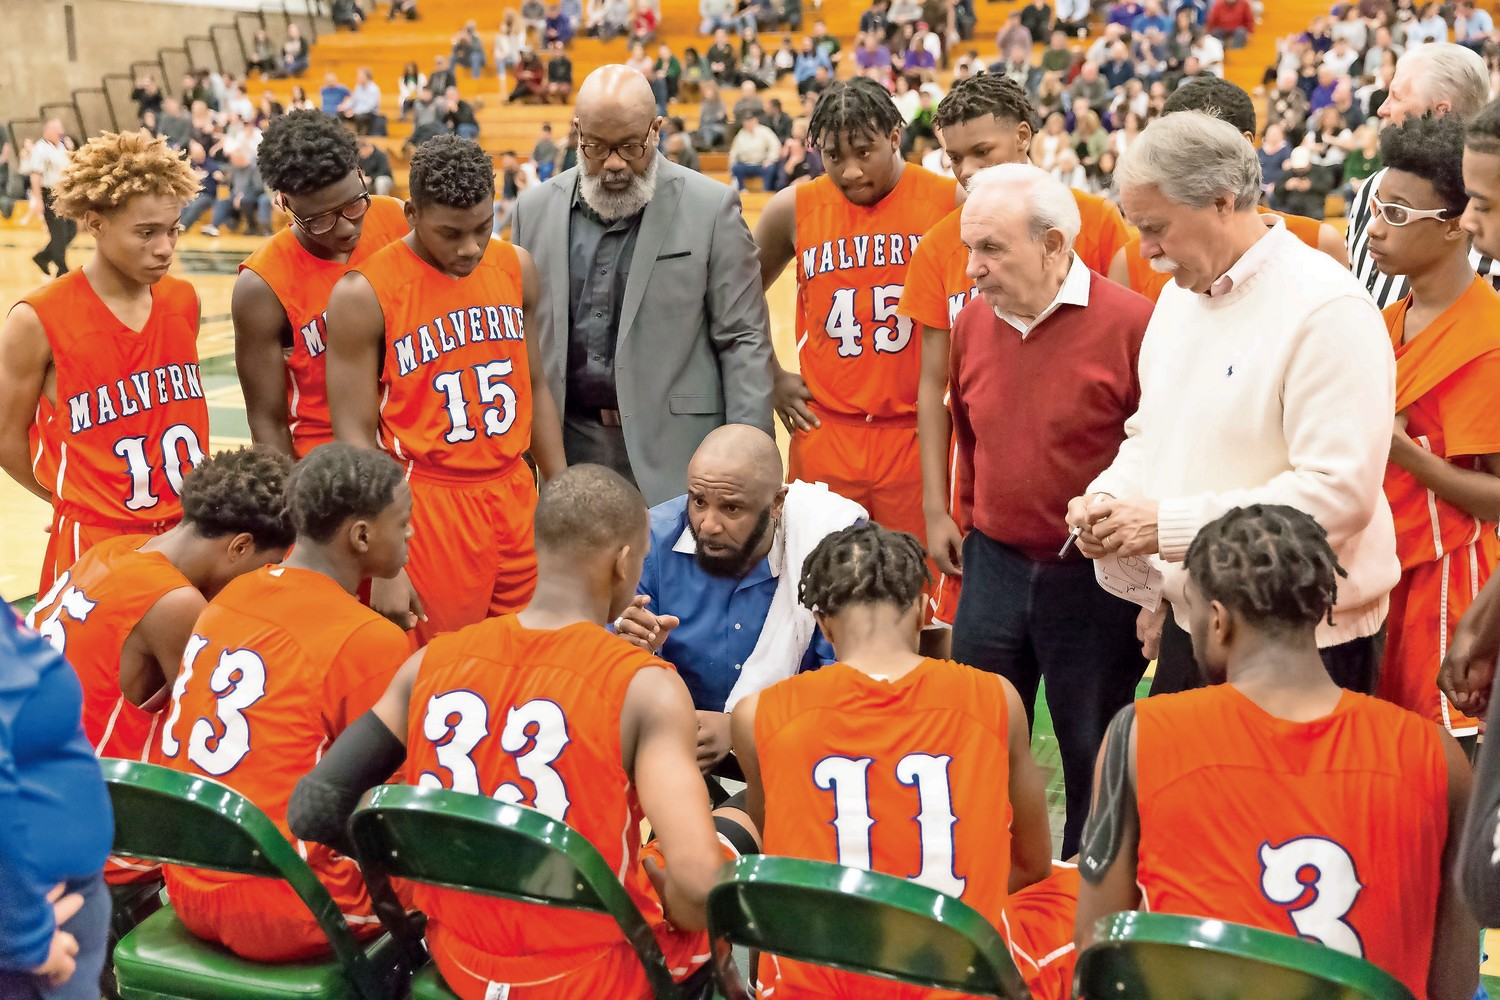 Malverne head coach Darrol Lopez urged his team to play tight, man-to-man defense.